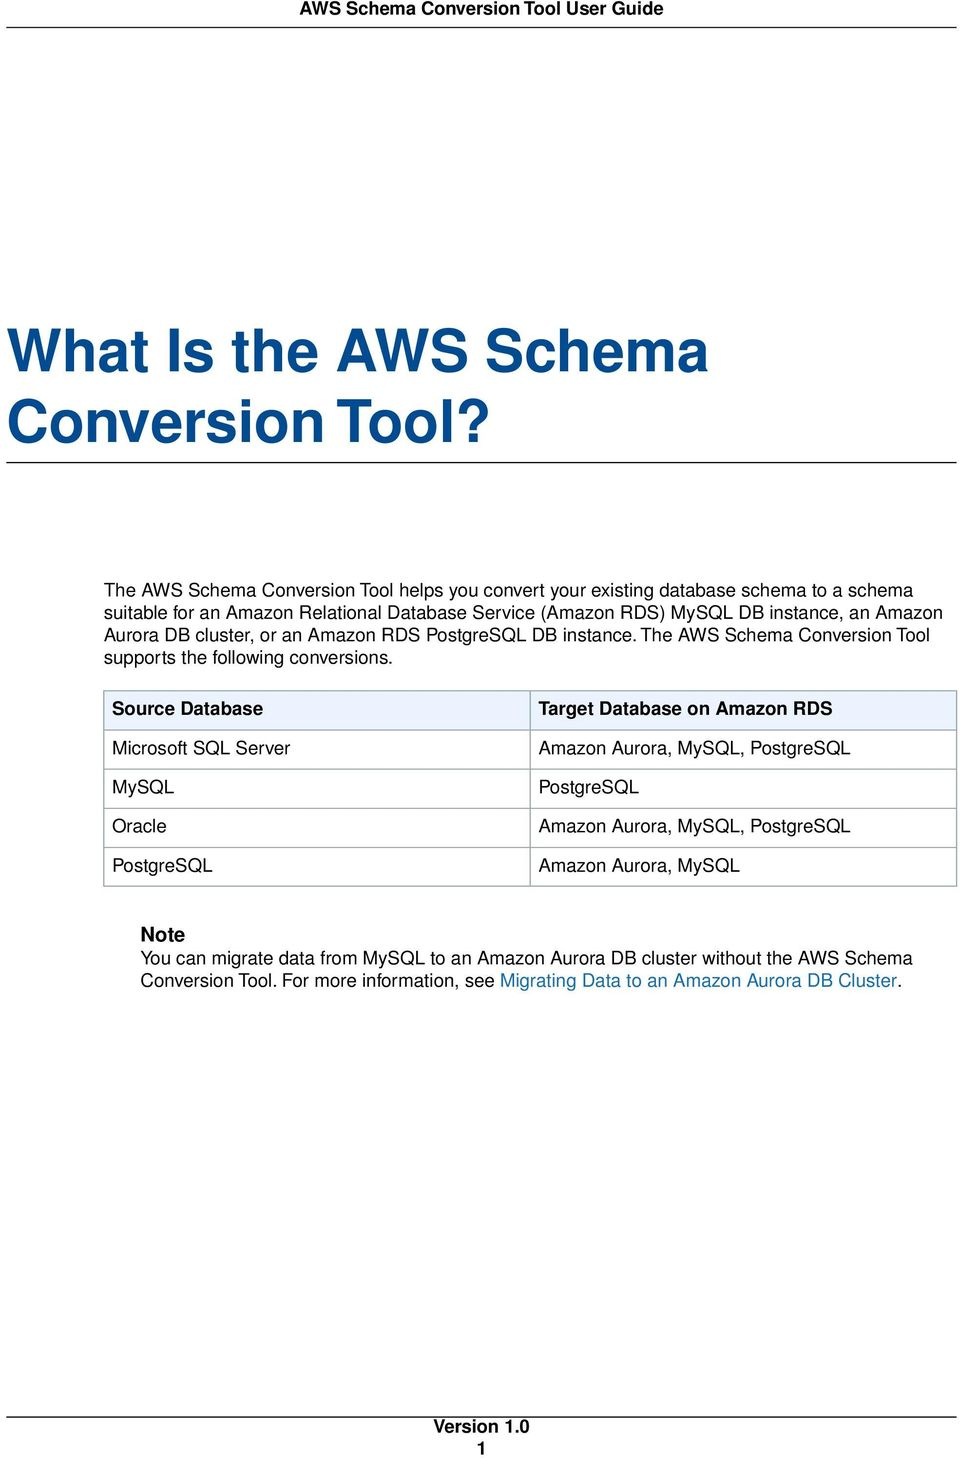 Amazon Aurora DB cluster, or an Amazon RDS PostgreSQL DB instance. The AWS Schema Conversion Tool supports the following conversions.